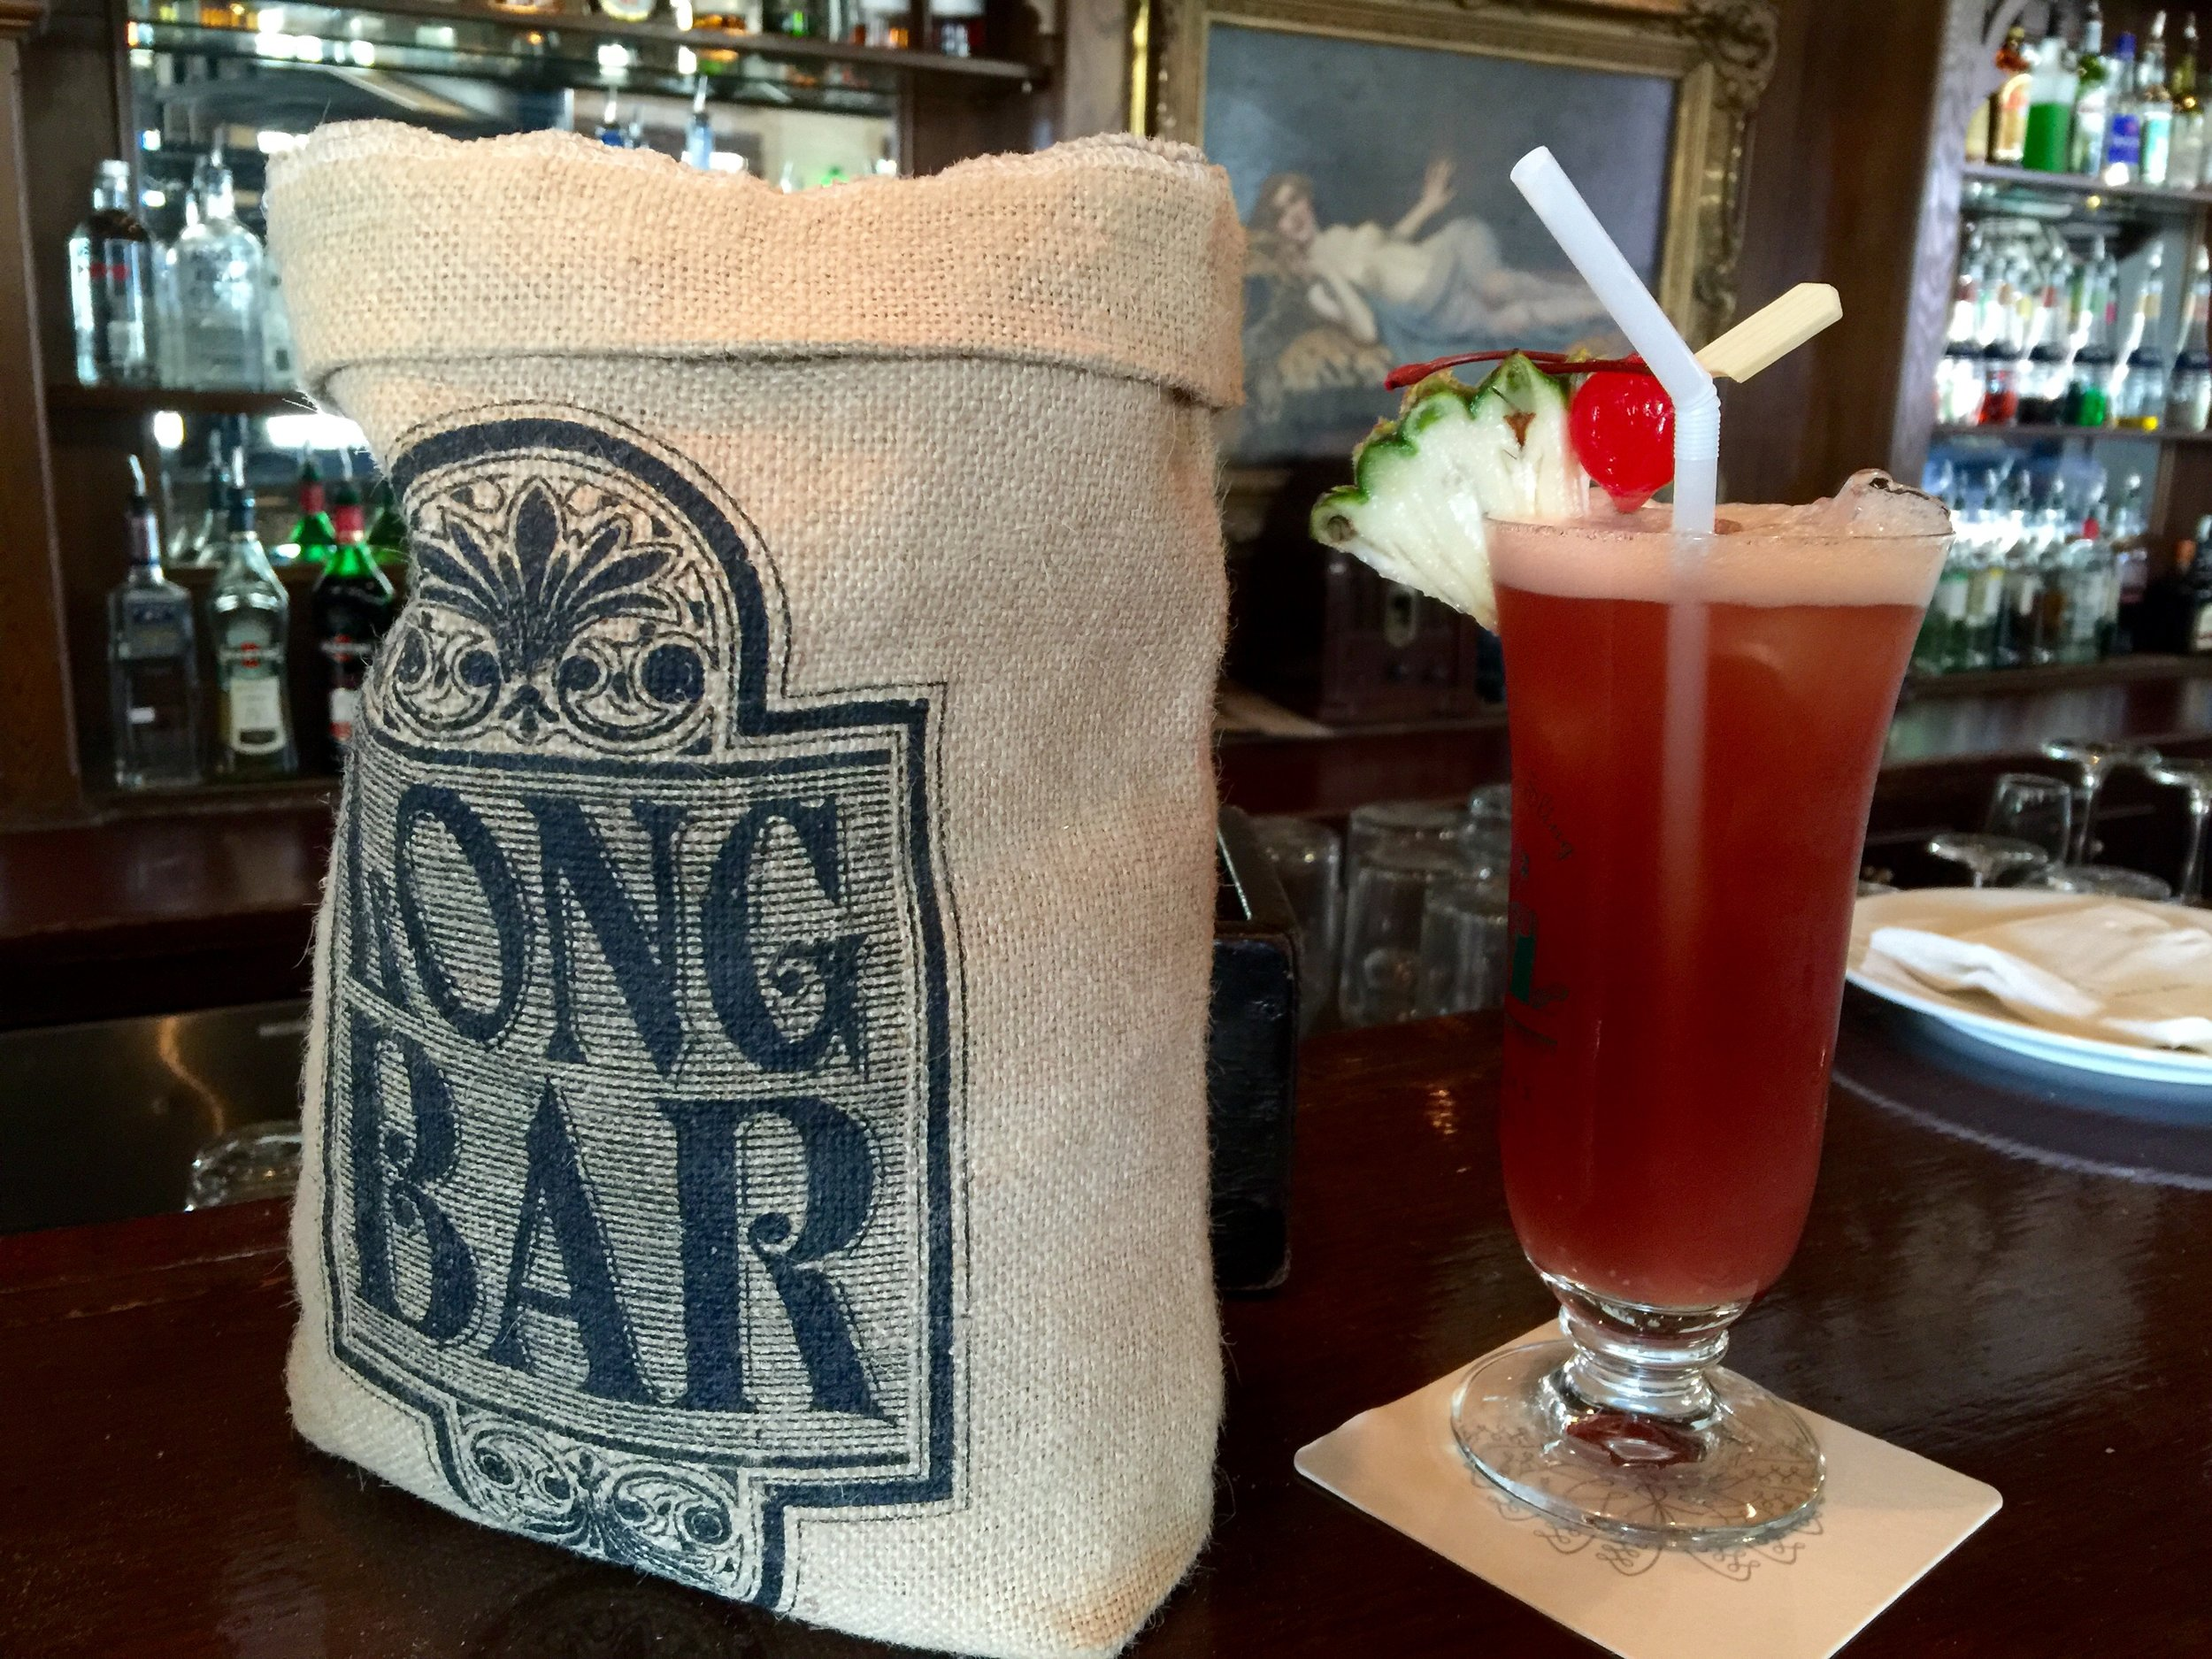 """The Long Bar at One Raffles Place   If you've ever heard of a """"Singapore Sling"""" - this bar is the reason why. Step in for a bit of history, and leave with a smile on your face. With a slightly tropical flair, great atmosphere, and a storied history dating back to Singapore's earliest days,the long bar is worth a visit even if you don't drink."""